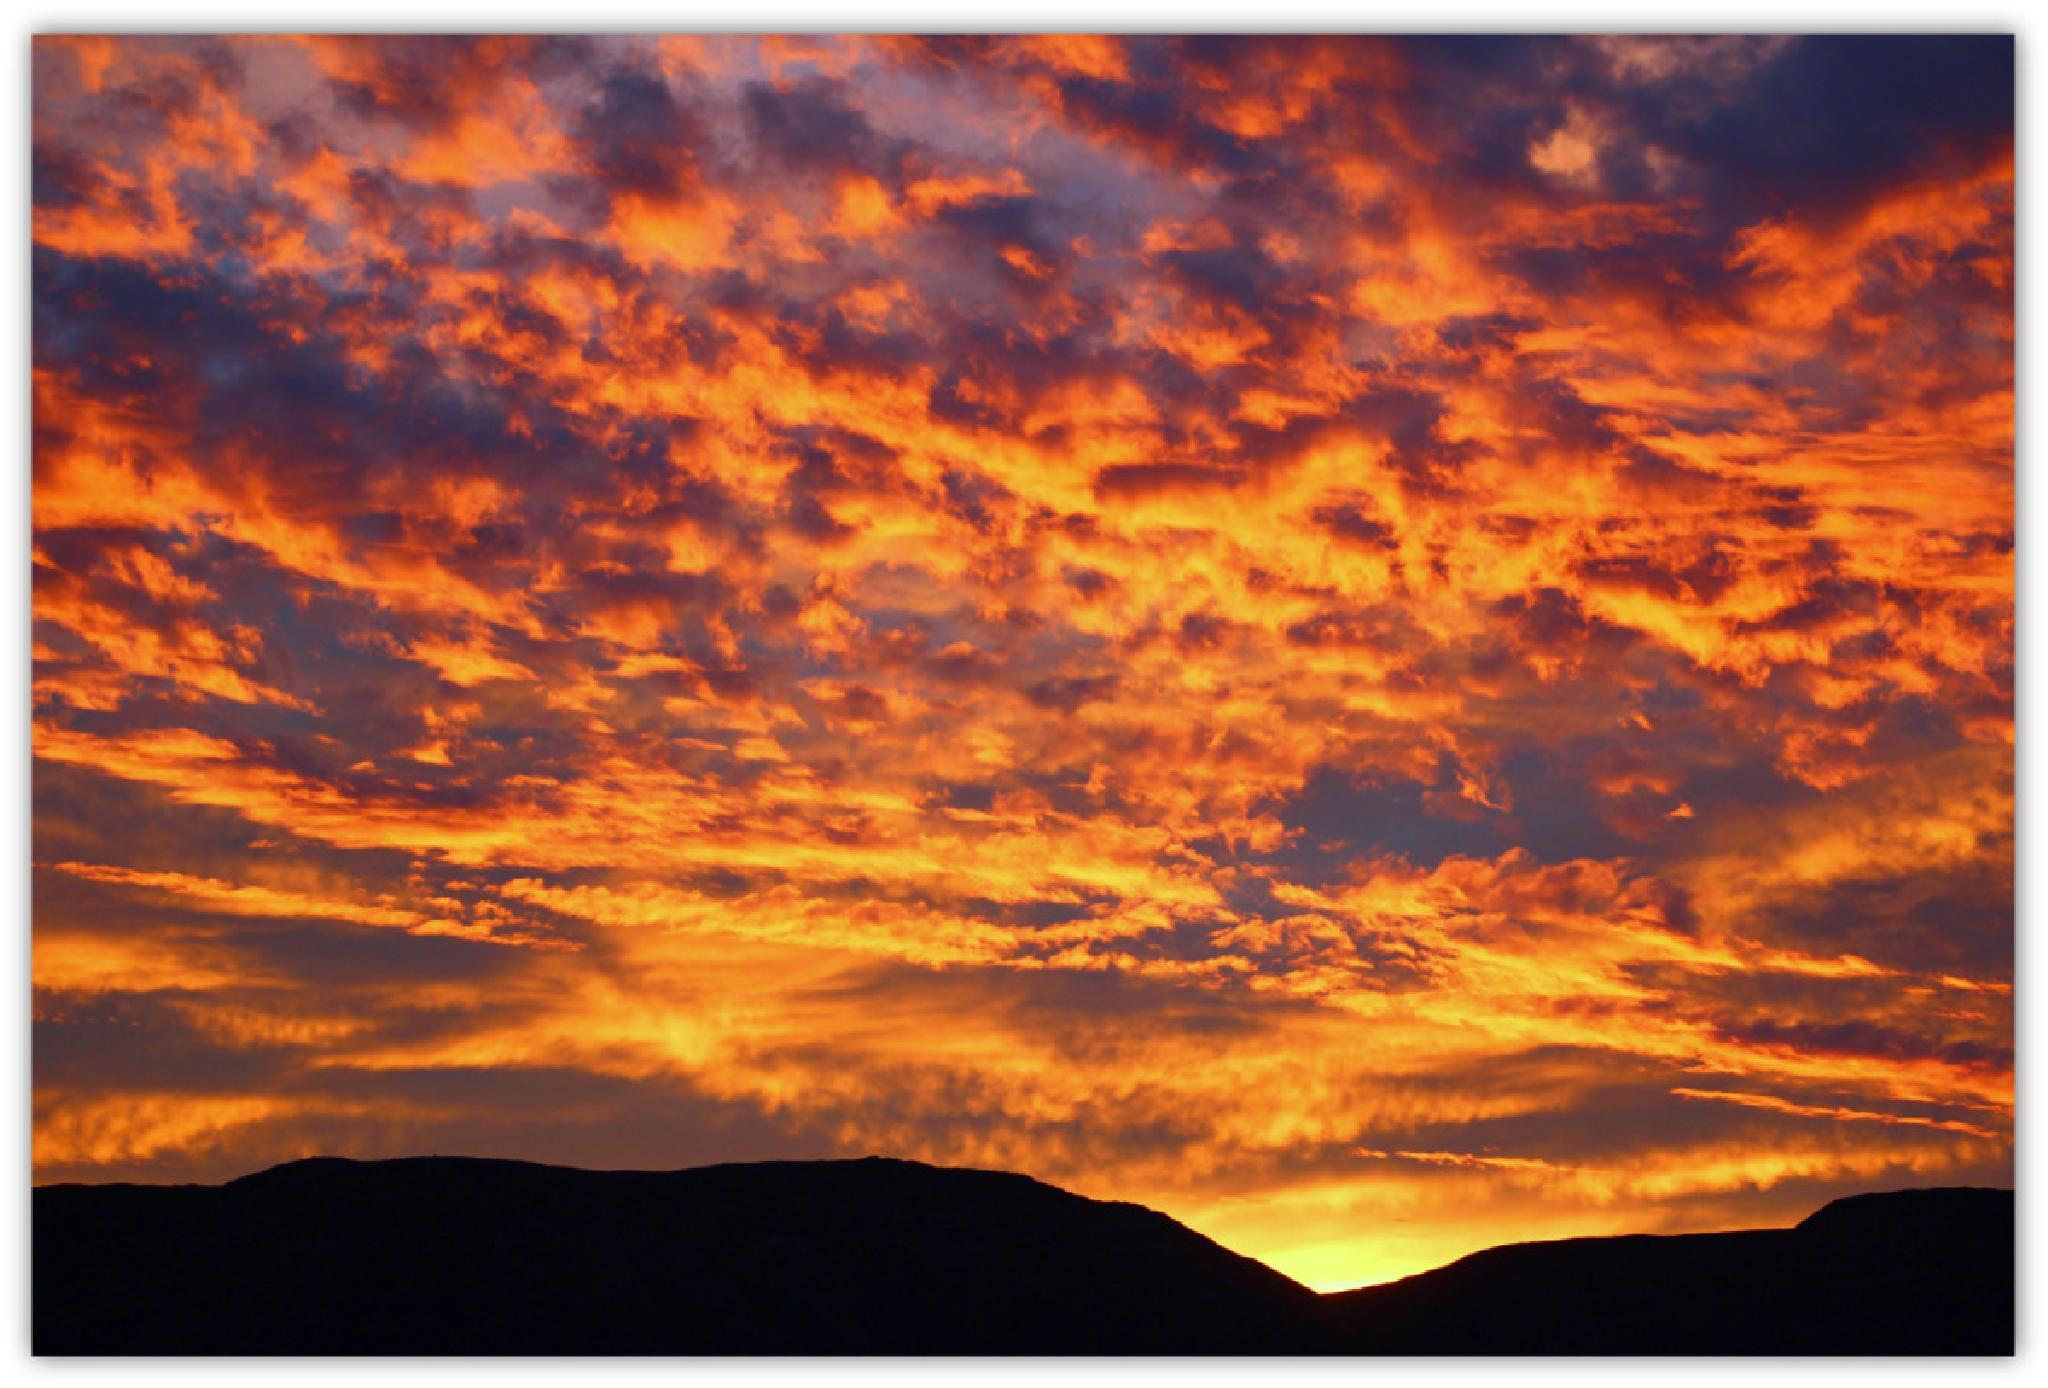 Clouds On Fire by tiffany186